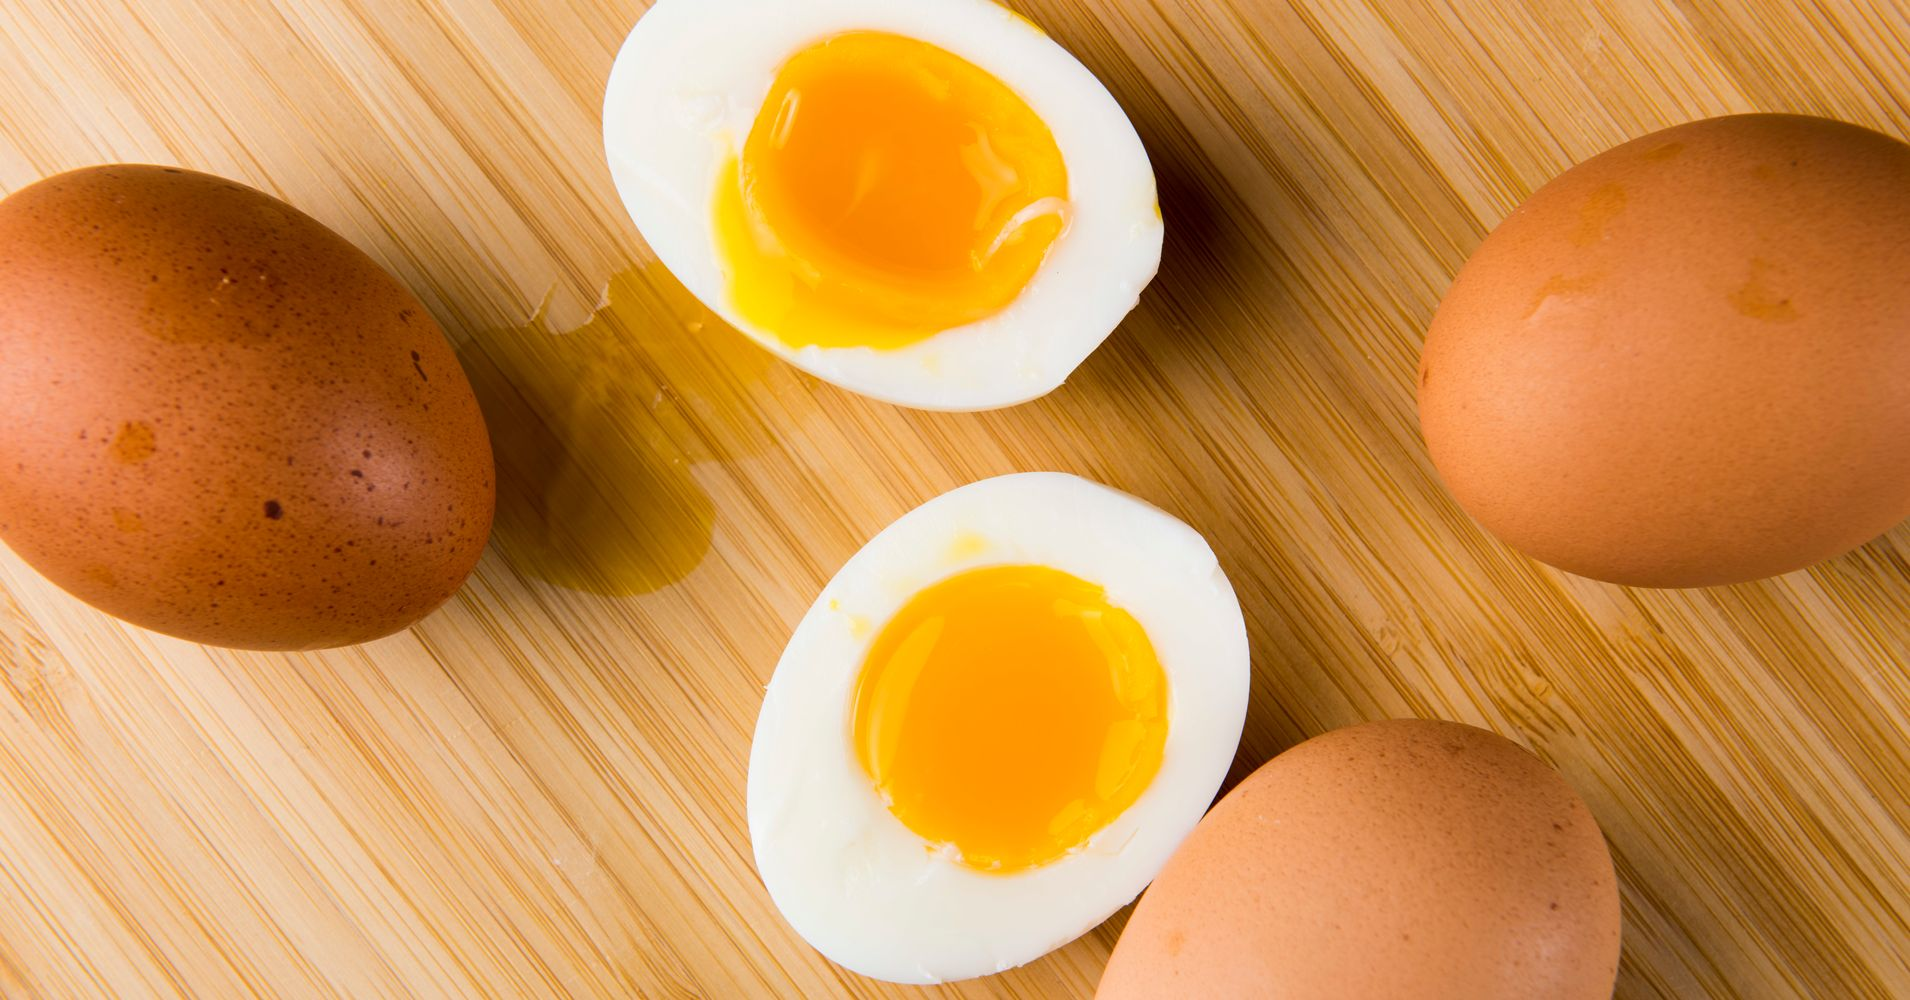 How long to hard boil an egg a visual guide huffpost for How long do you boil hard boiled eggs